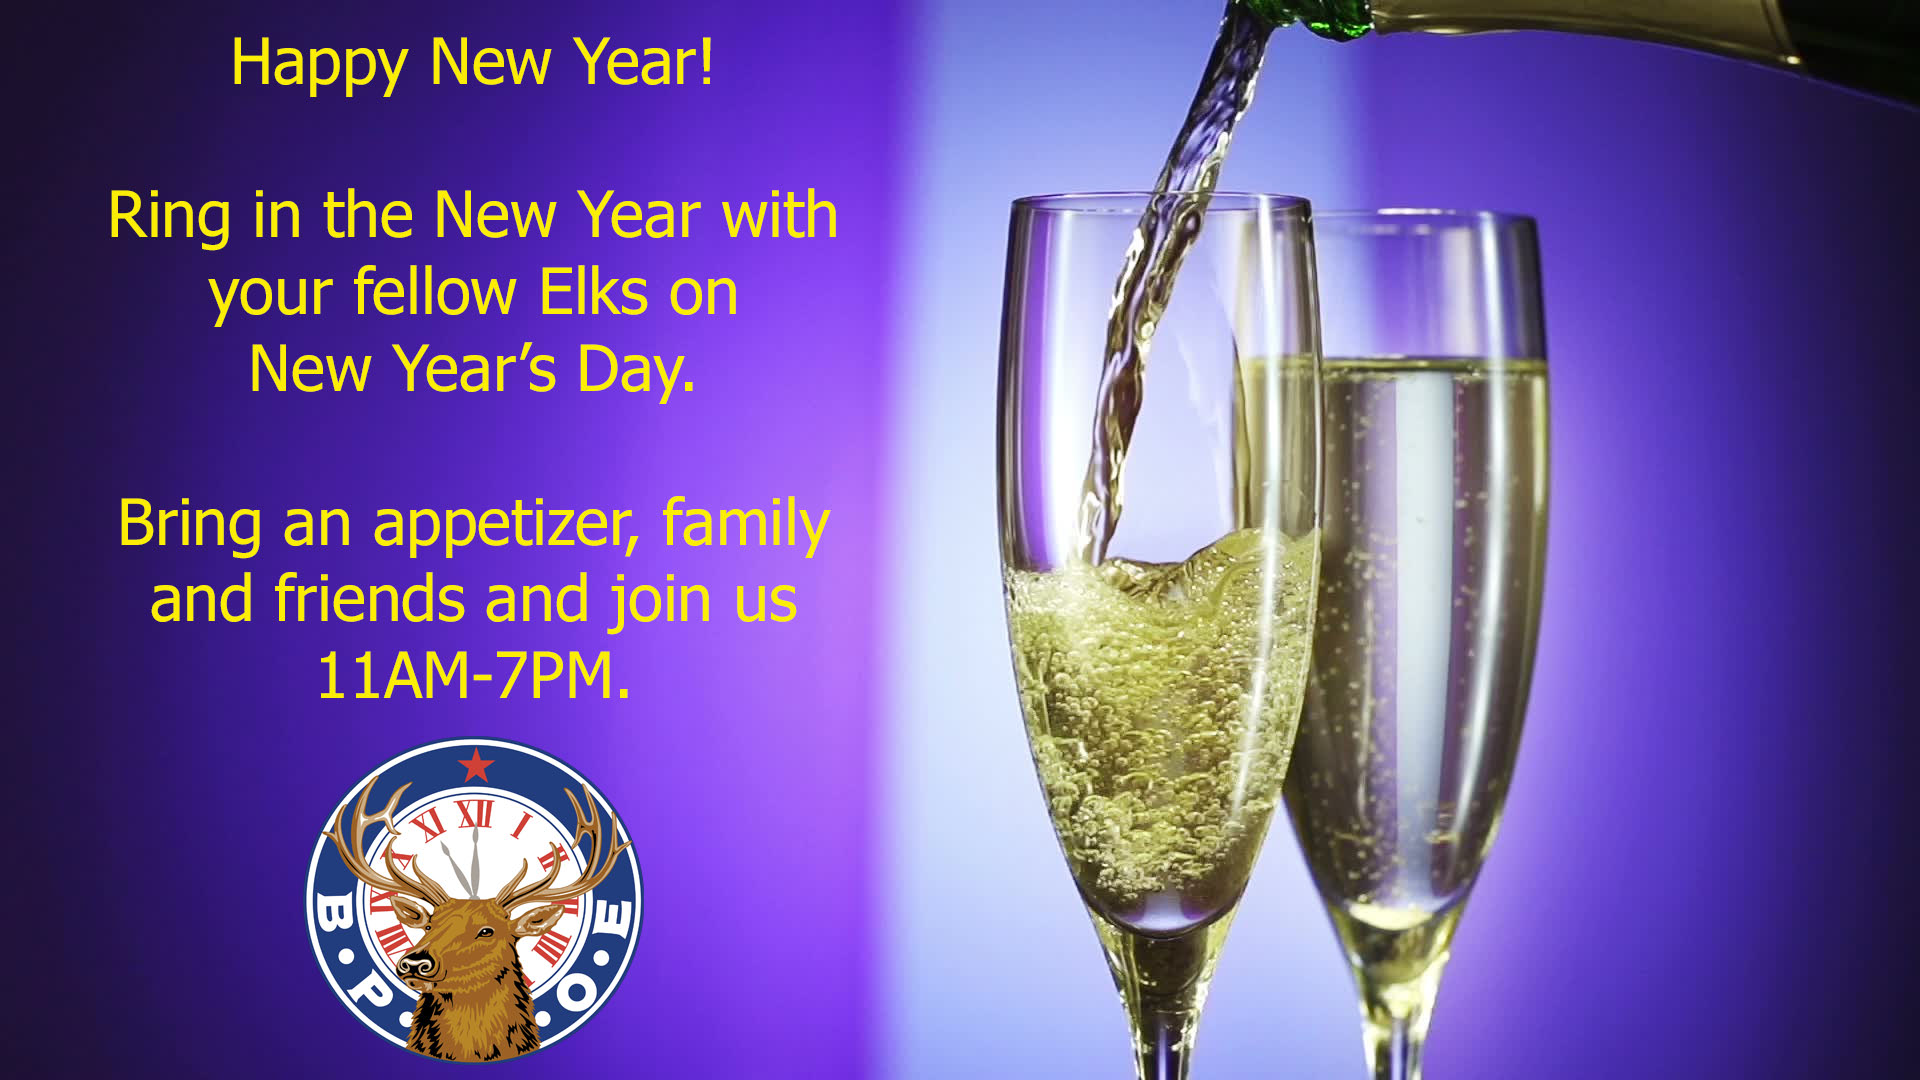 Ring in the New Year in 2019 with BPOE Elks Lodge #885